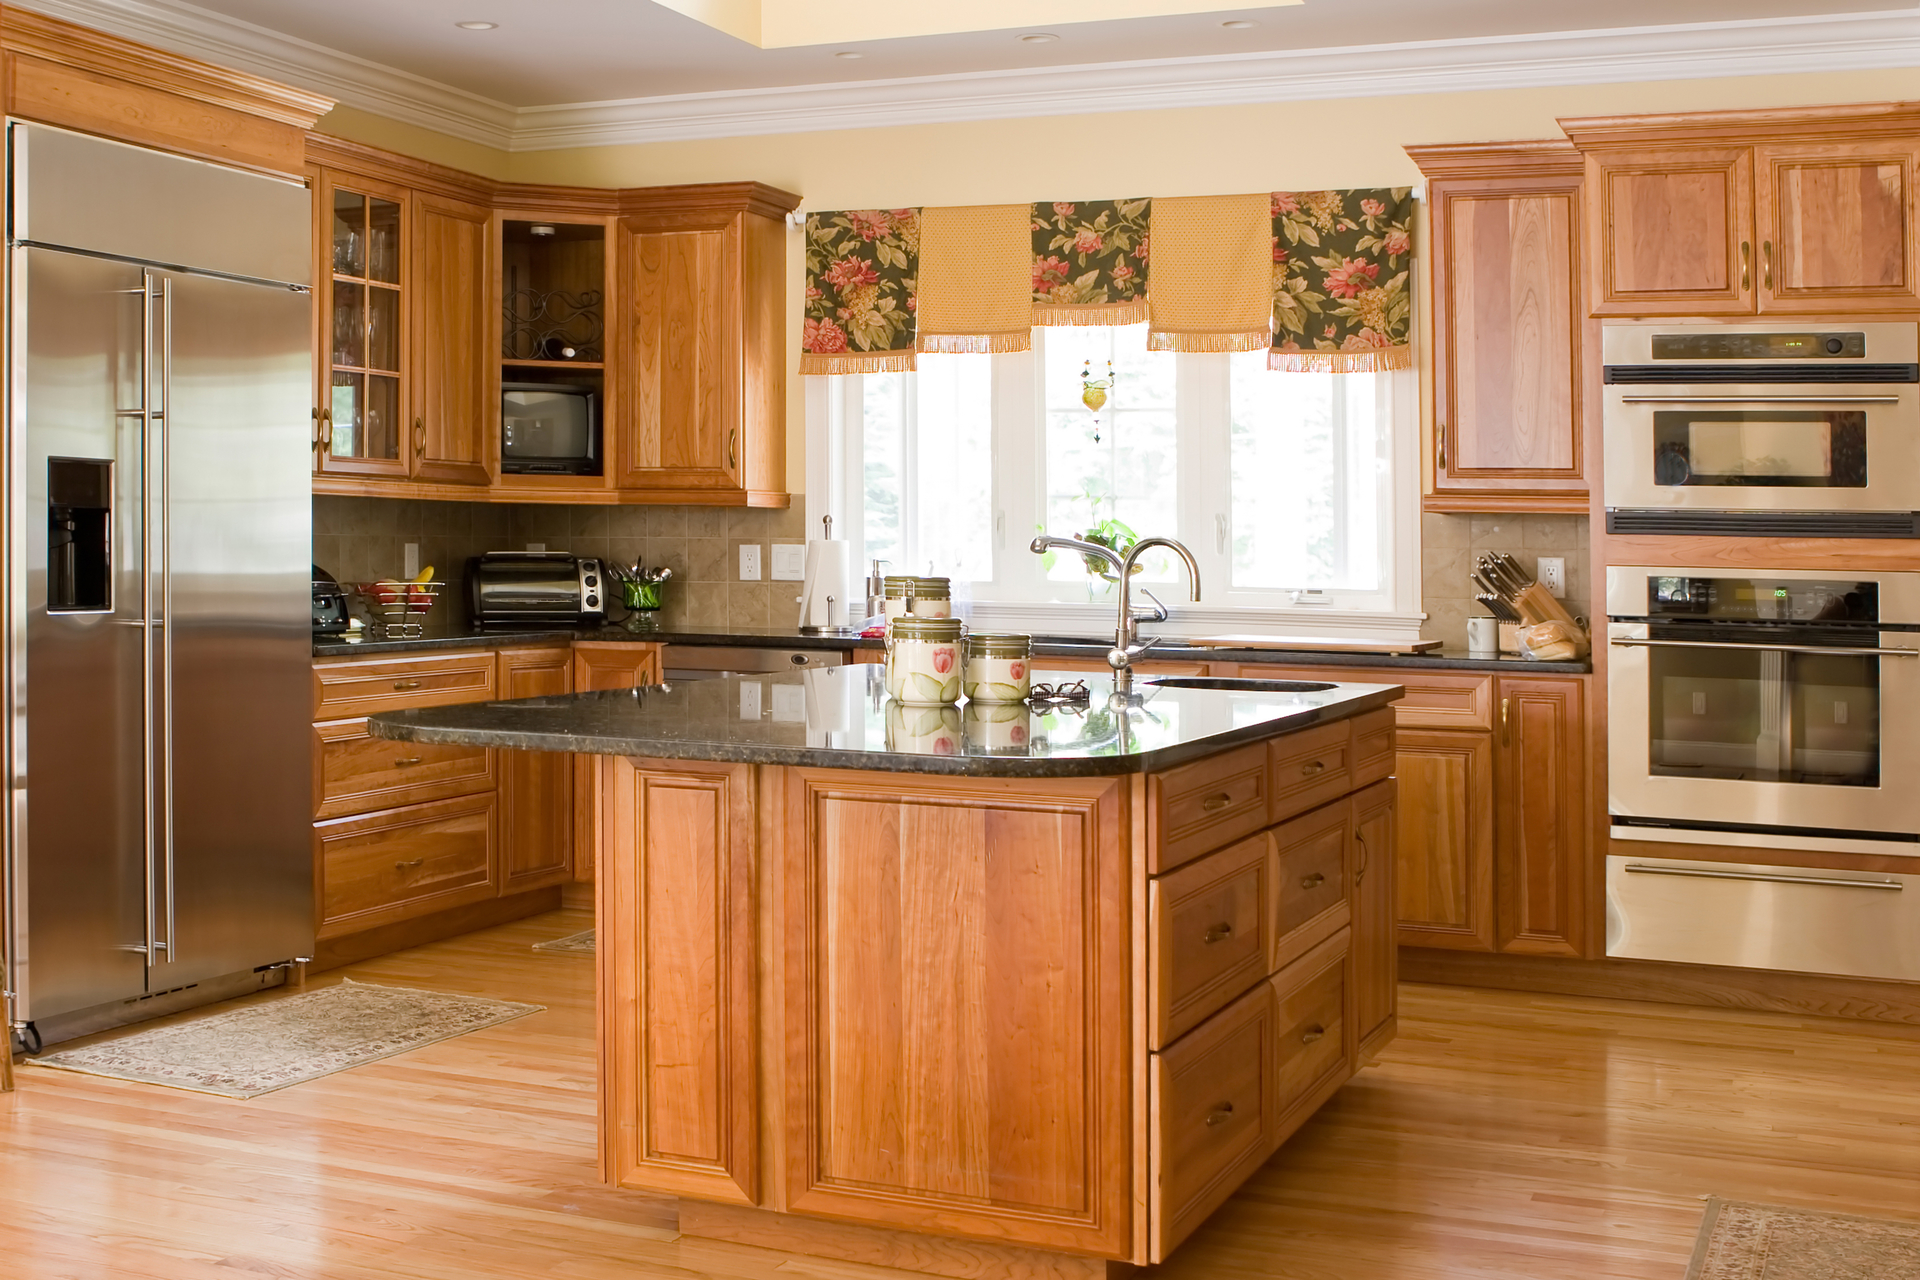 Choose materials for your spring project from cincinnati 39 s for Cincinnati kitchen cabinets